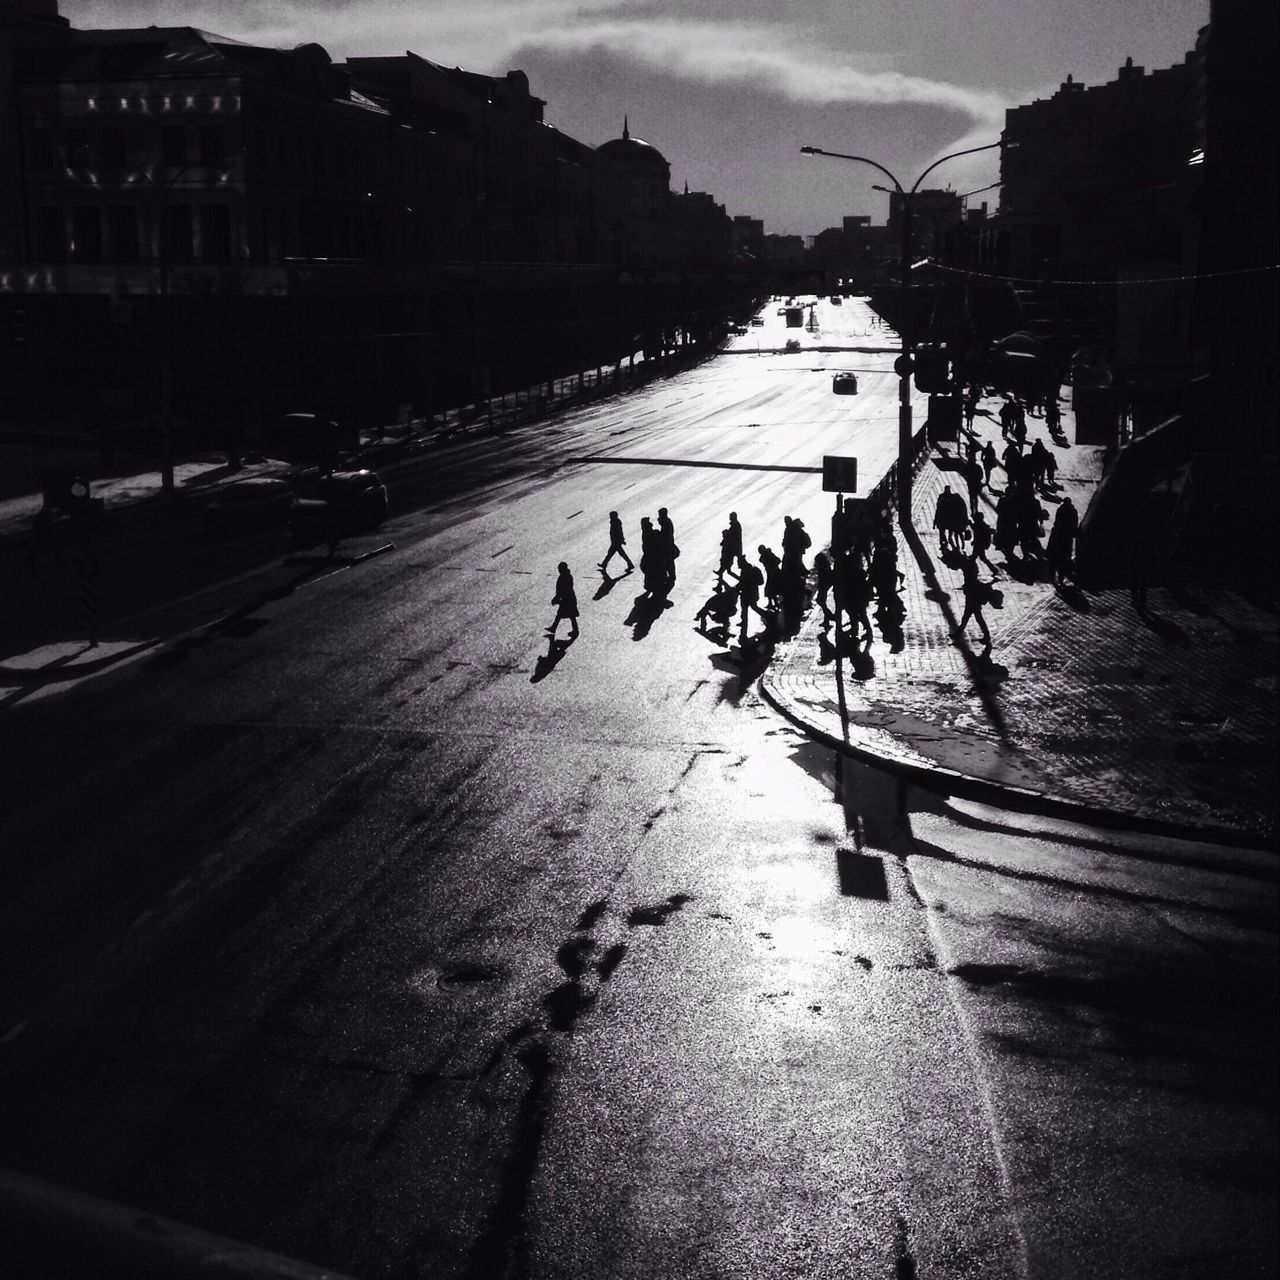 Traffic Real People Large Group Of People Lifestyles Sunlight Outdoors Streetphotography Blackandwhite